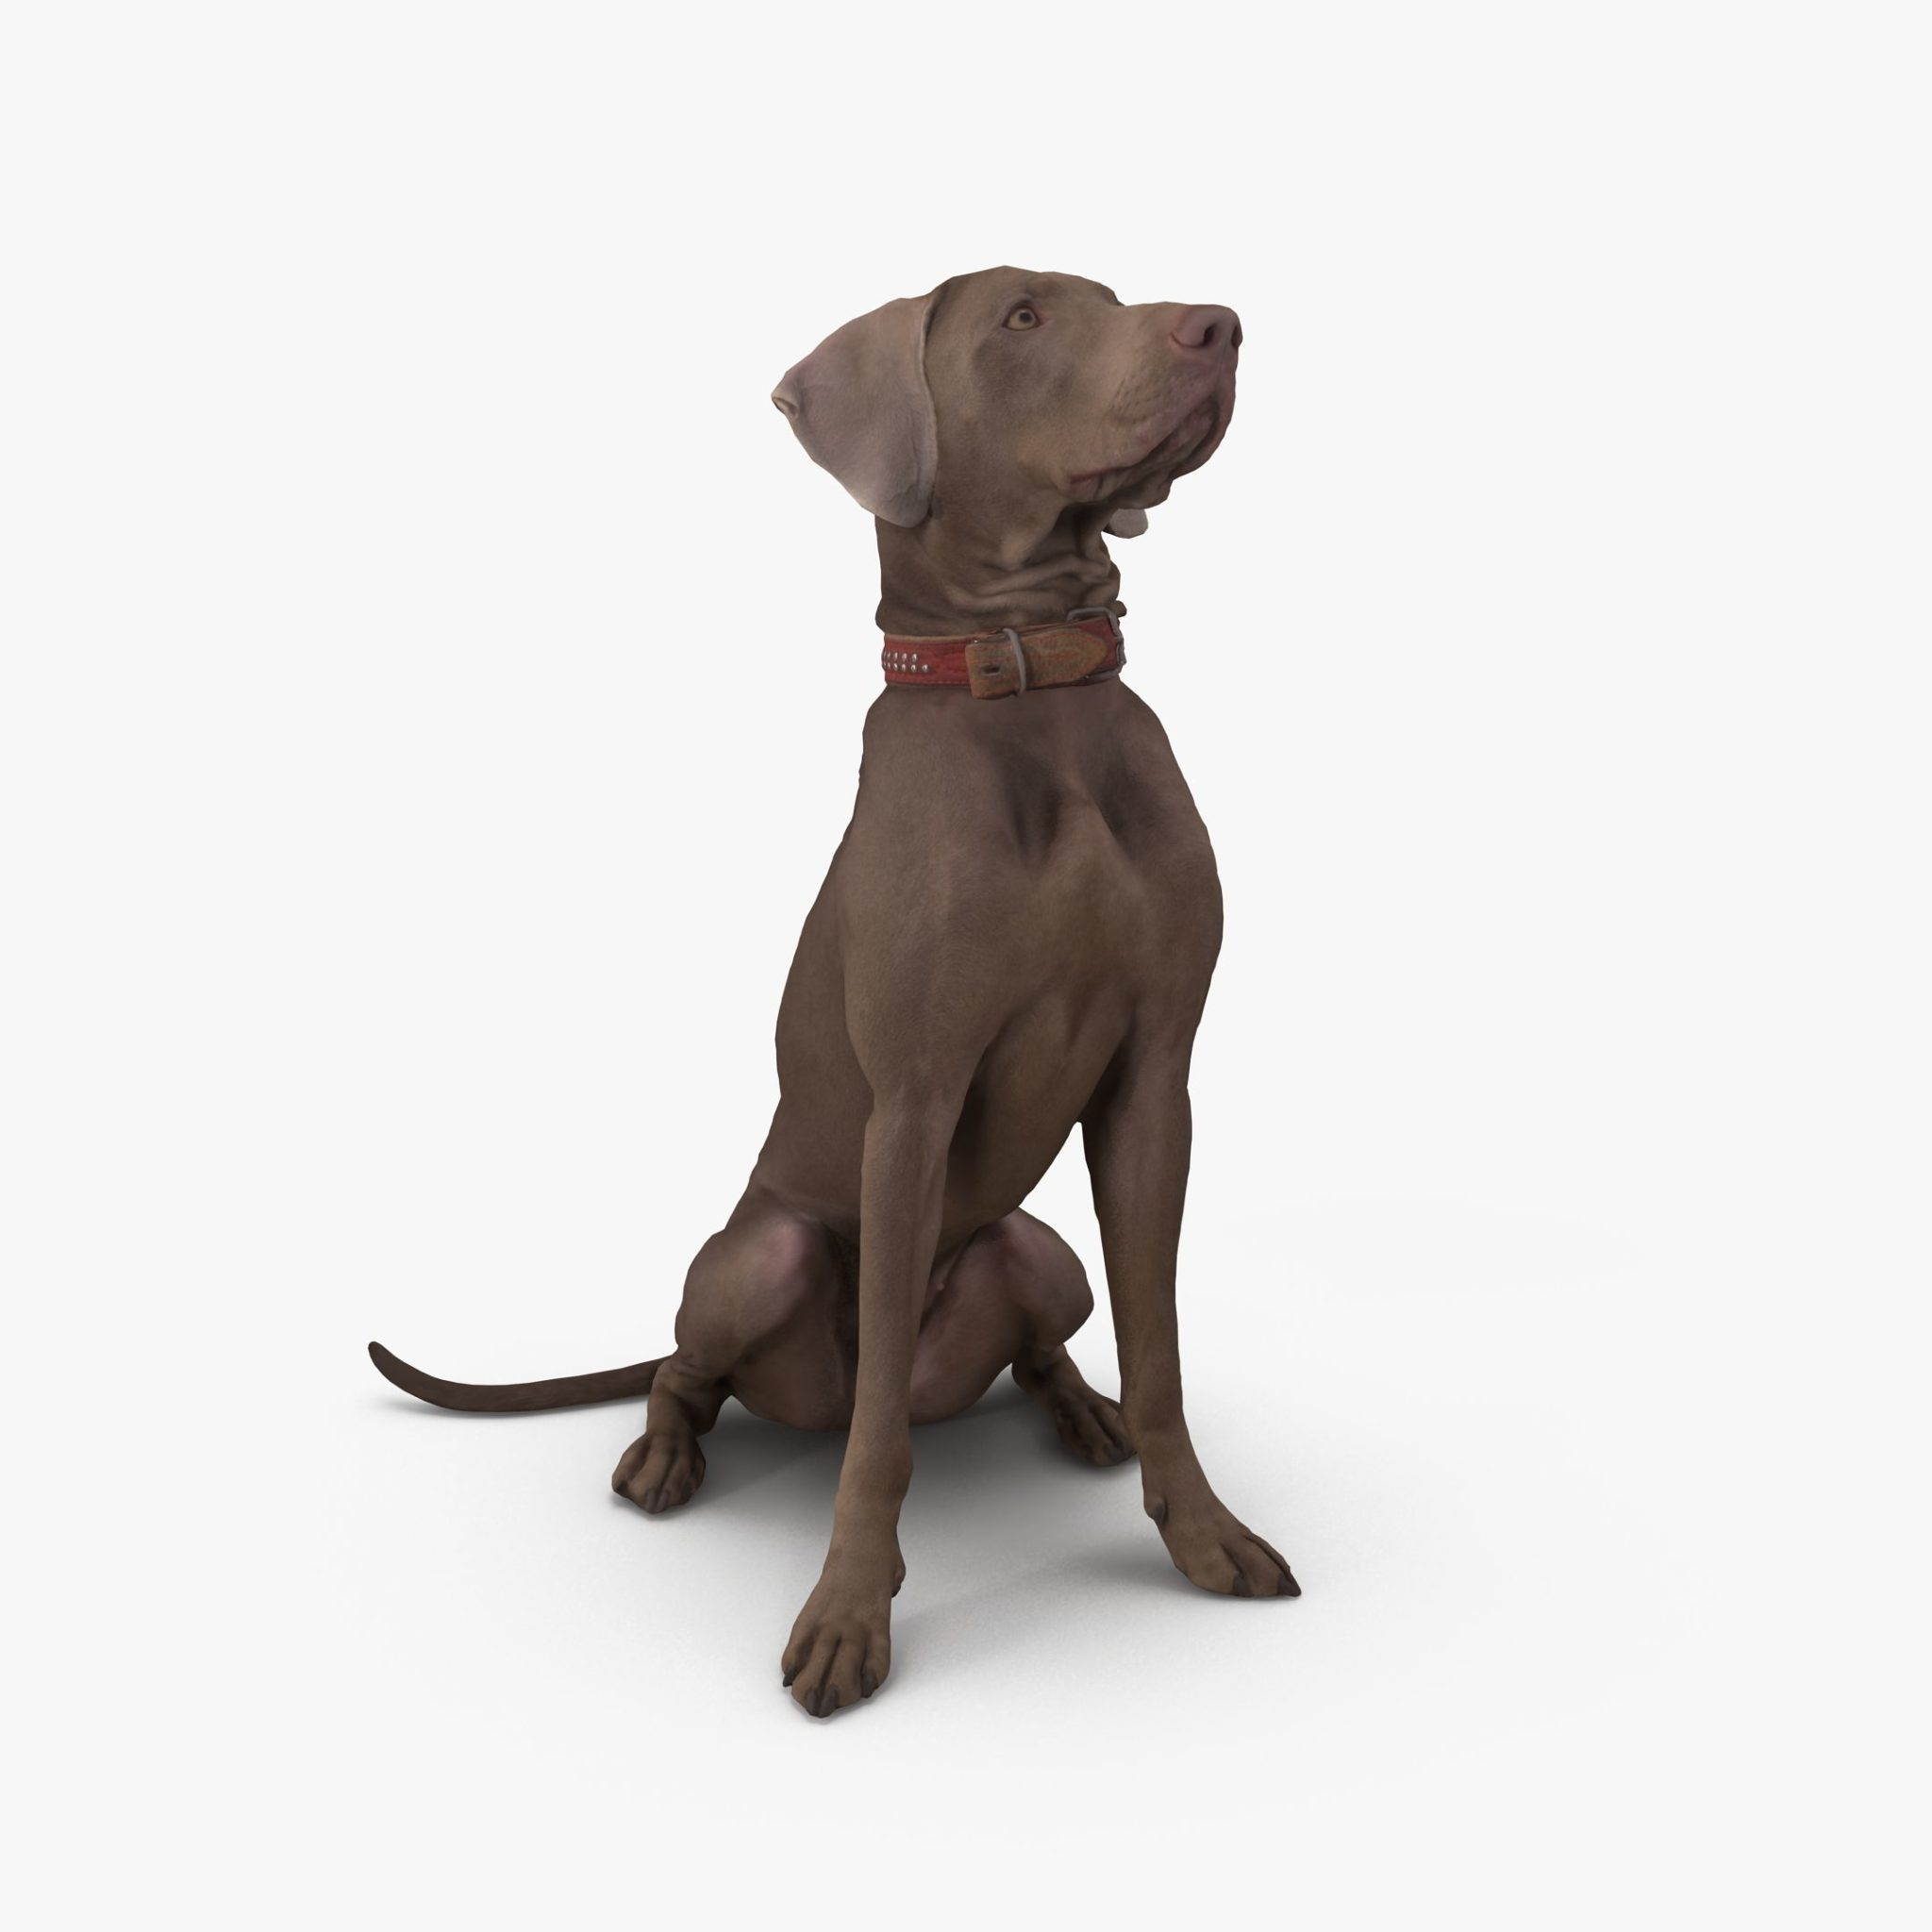 Weimaraner Sitting Dog 3D Model | 3DTree Scanning Studio